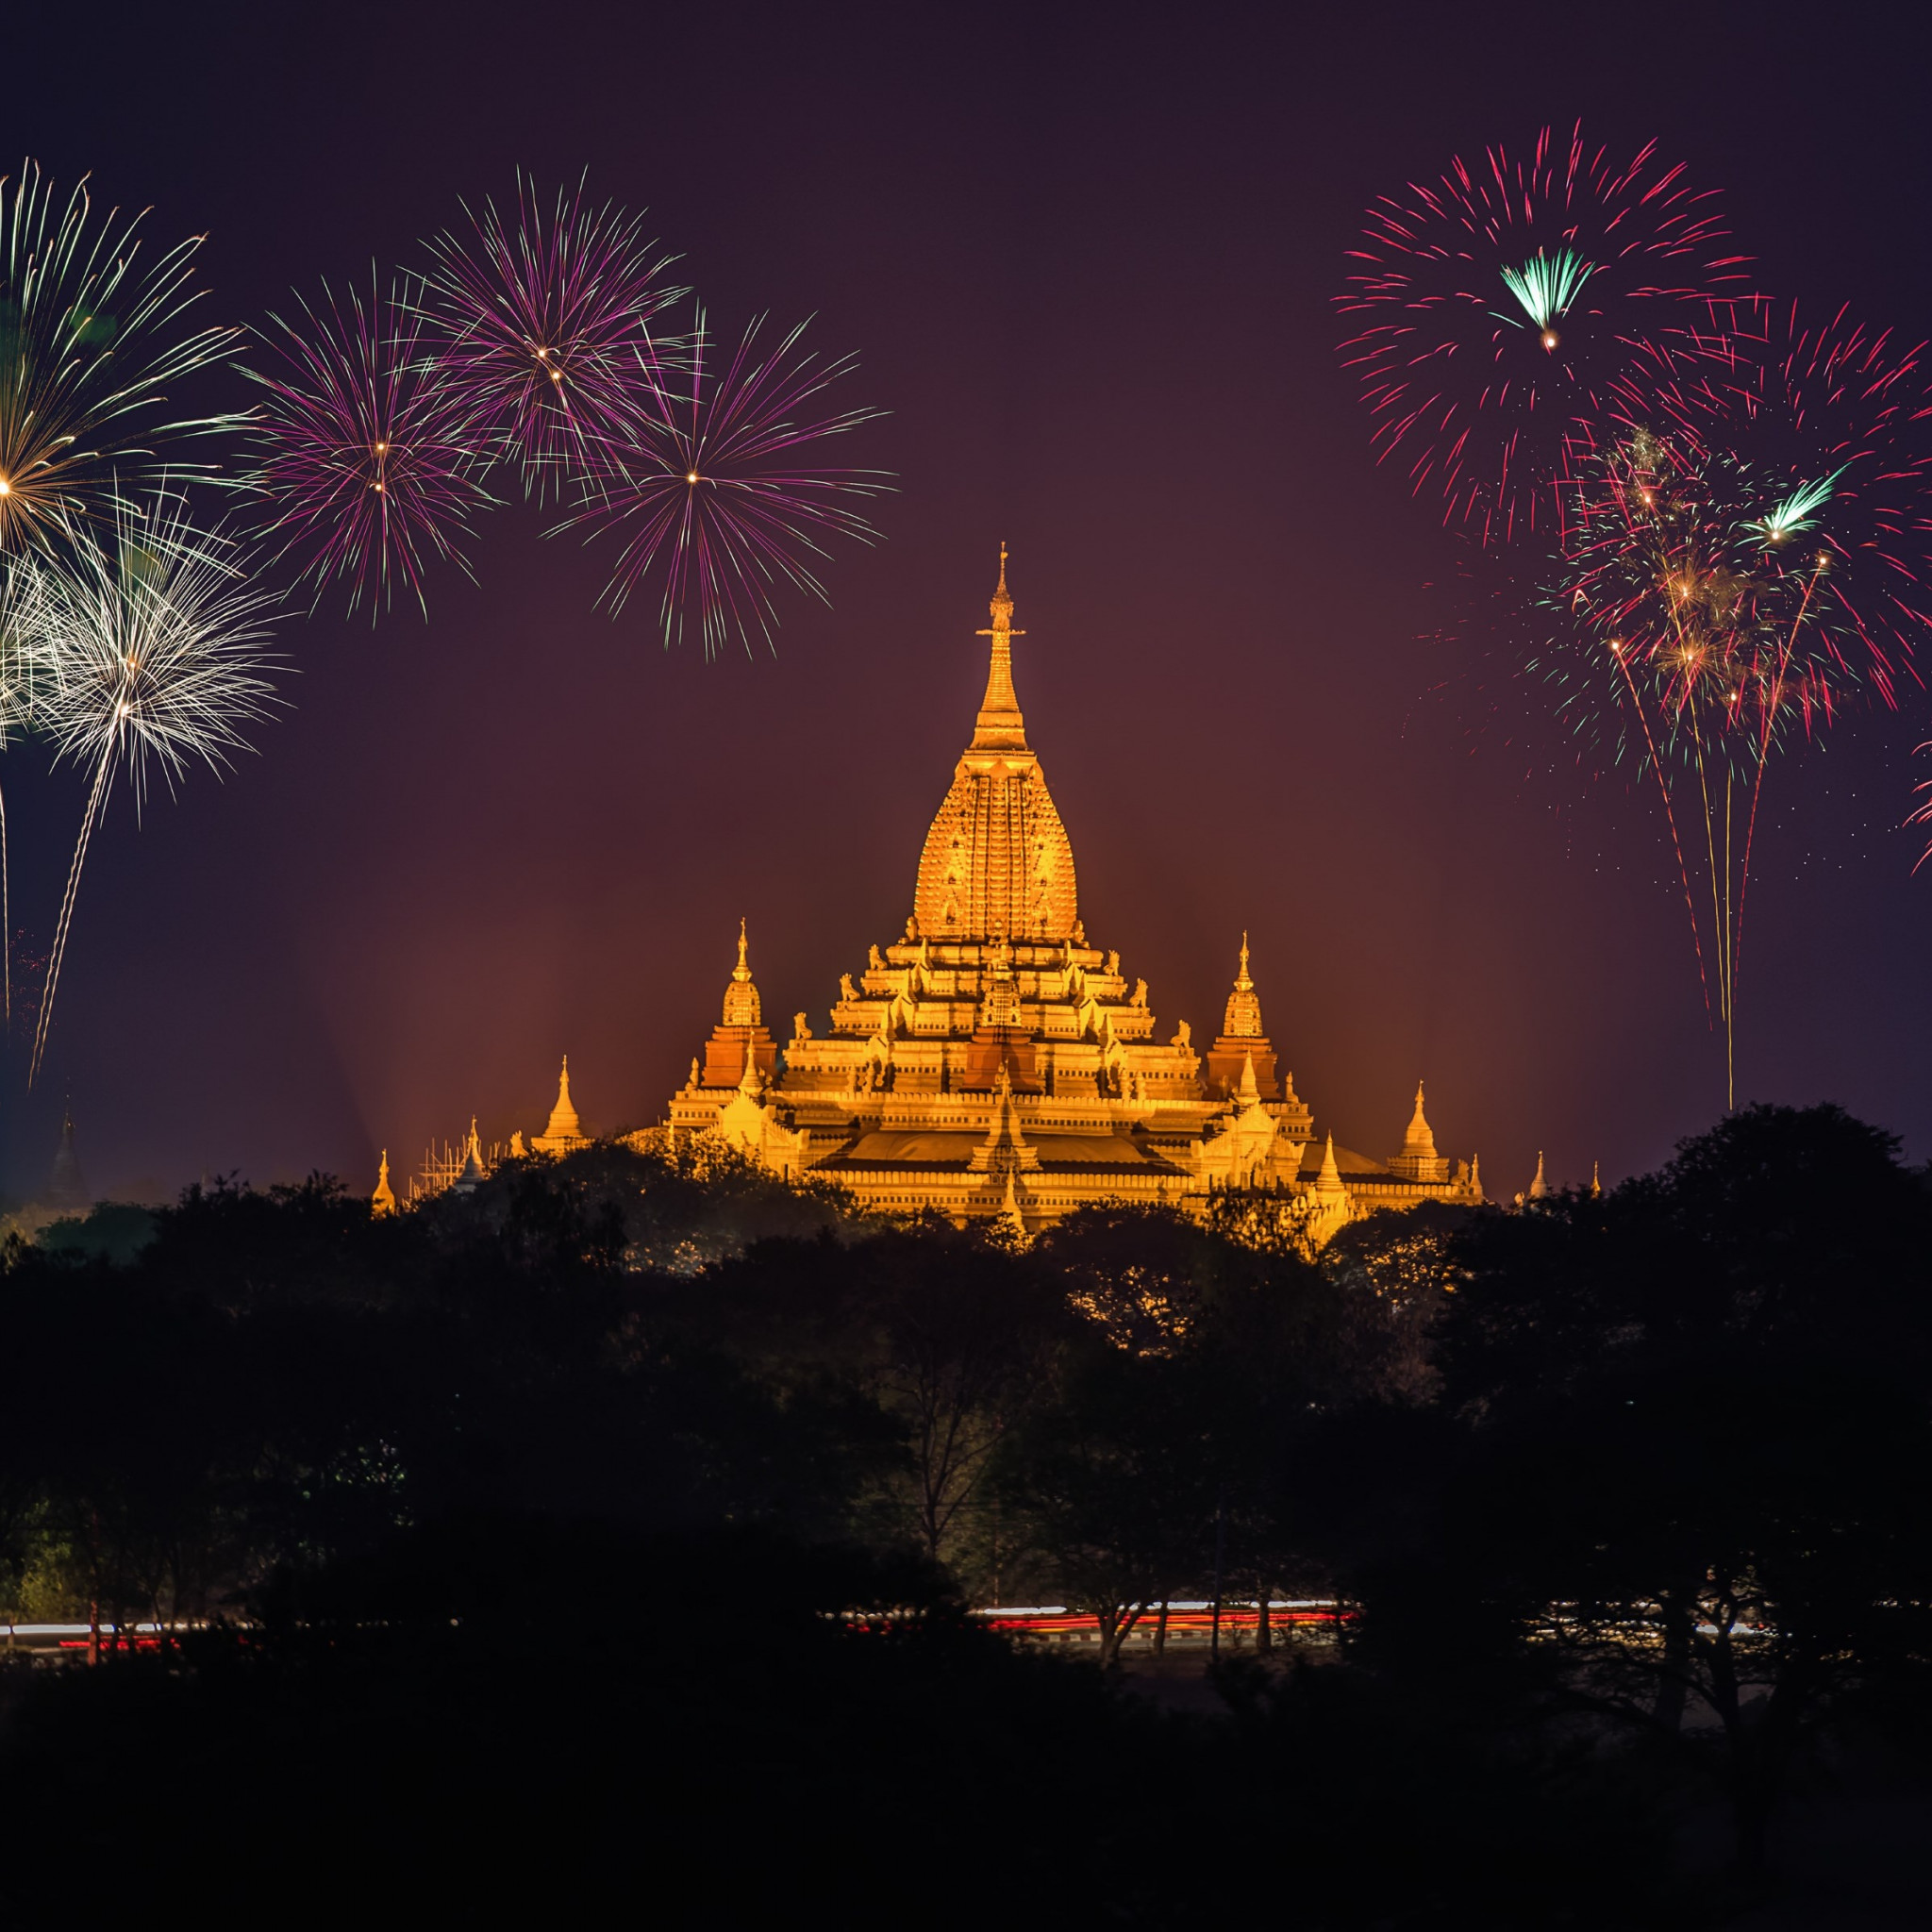 Fireworks above Ananda Phato temple | 2048x2048 wallpaper